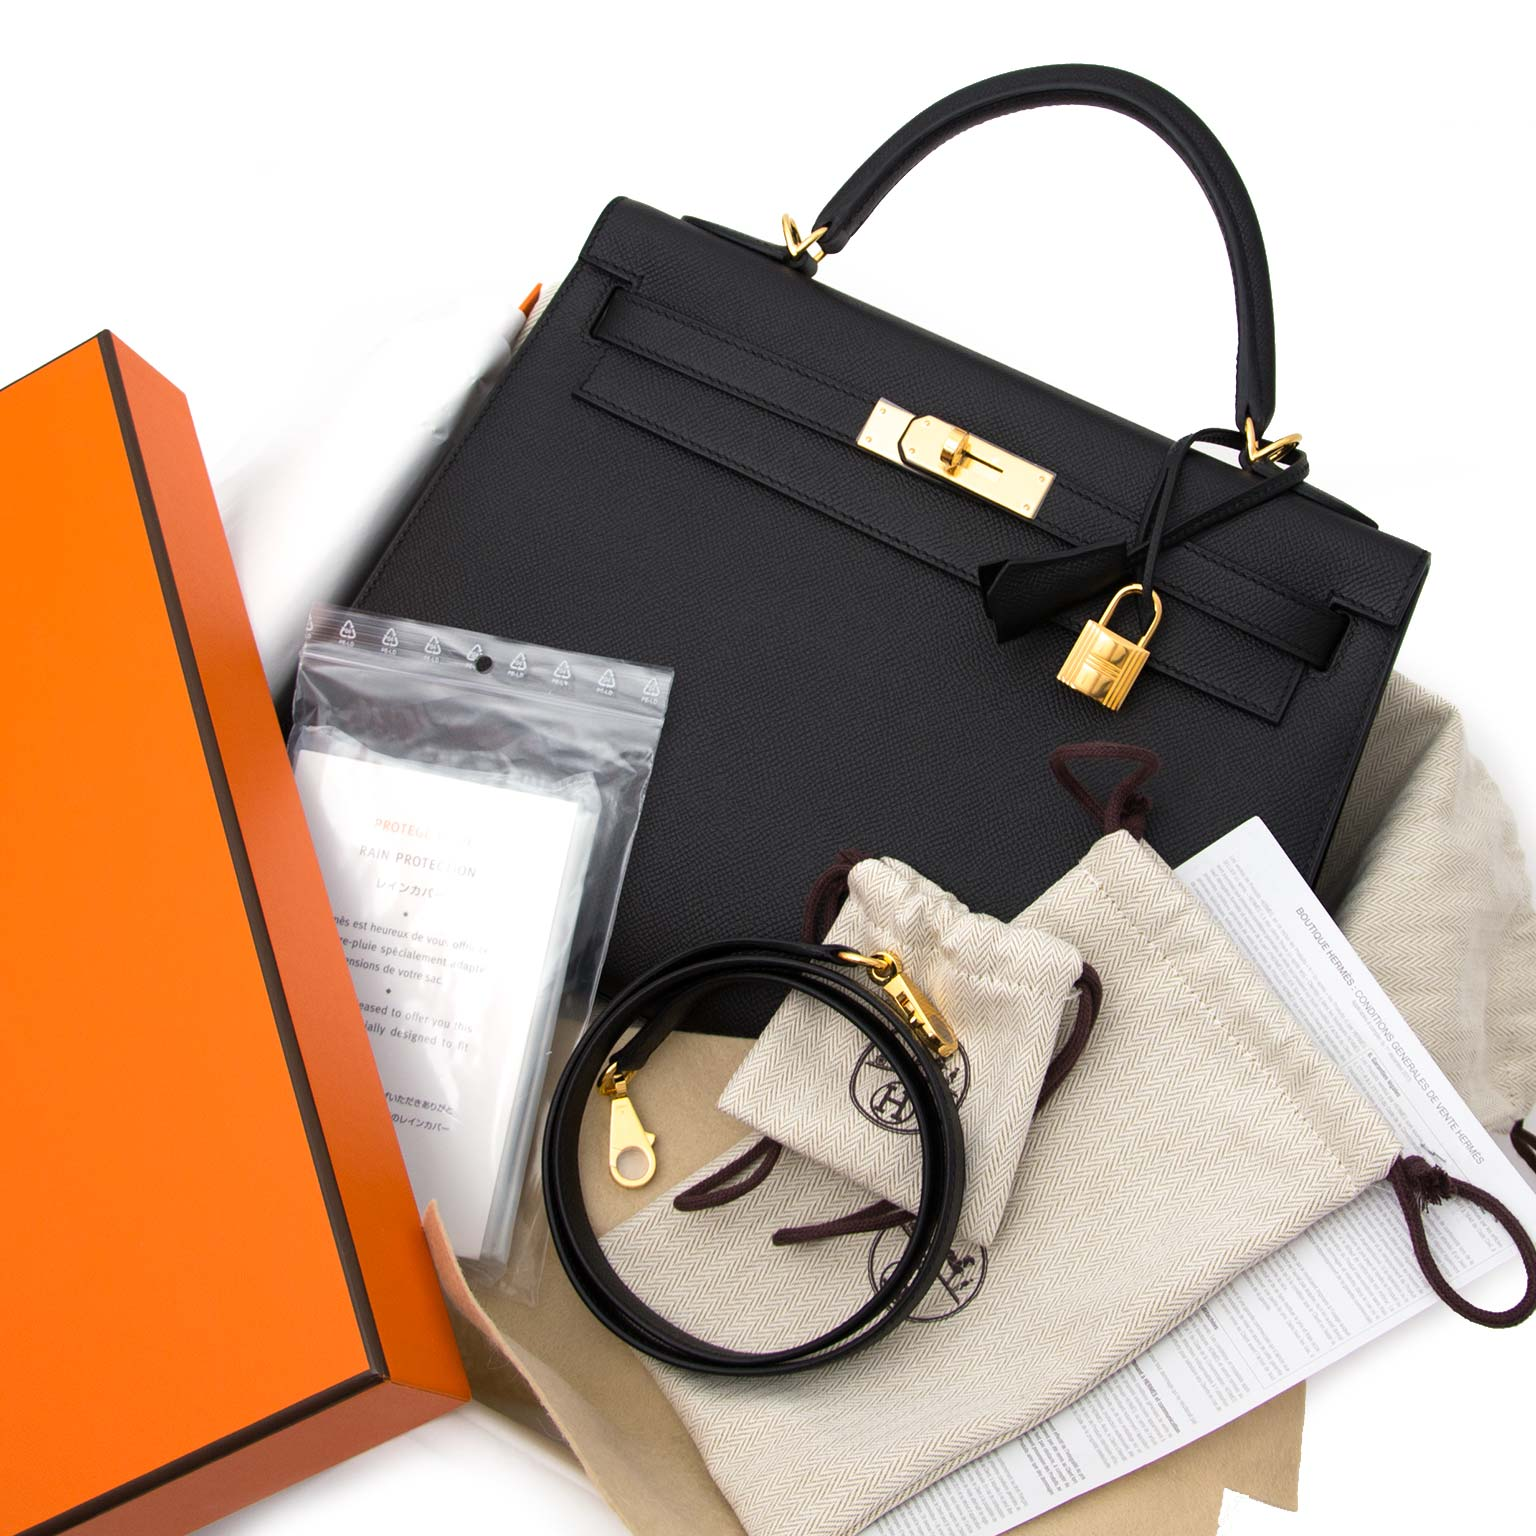 looking for a black hermes kelly bag 32 in epsom? Find all the hermes bags you are searching for at labellov.com 100% authentic